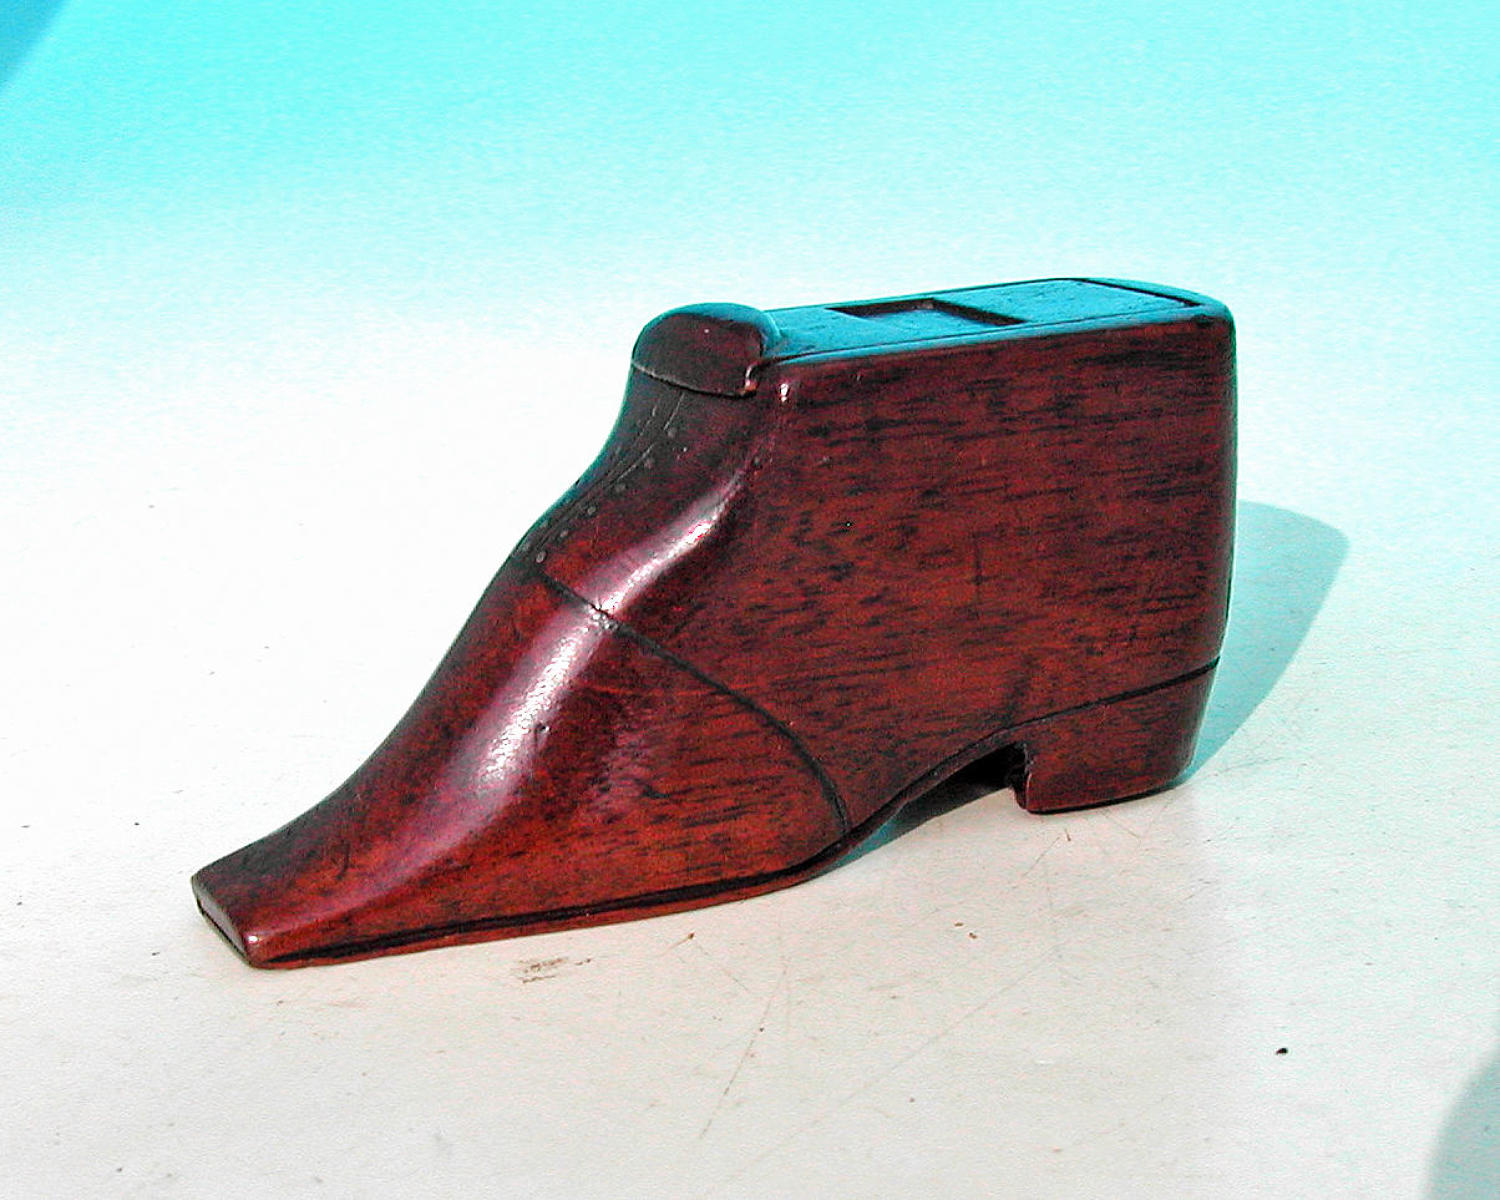 Antique 19thc Treen Mahogany Shaped Shoe Snuff Box.  English. C1840-60